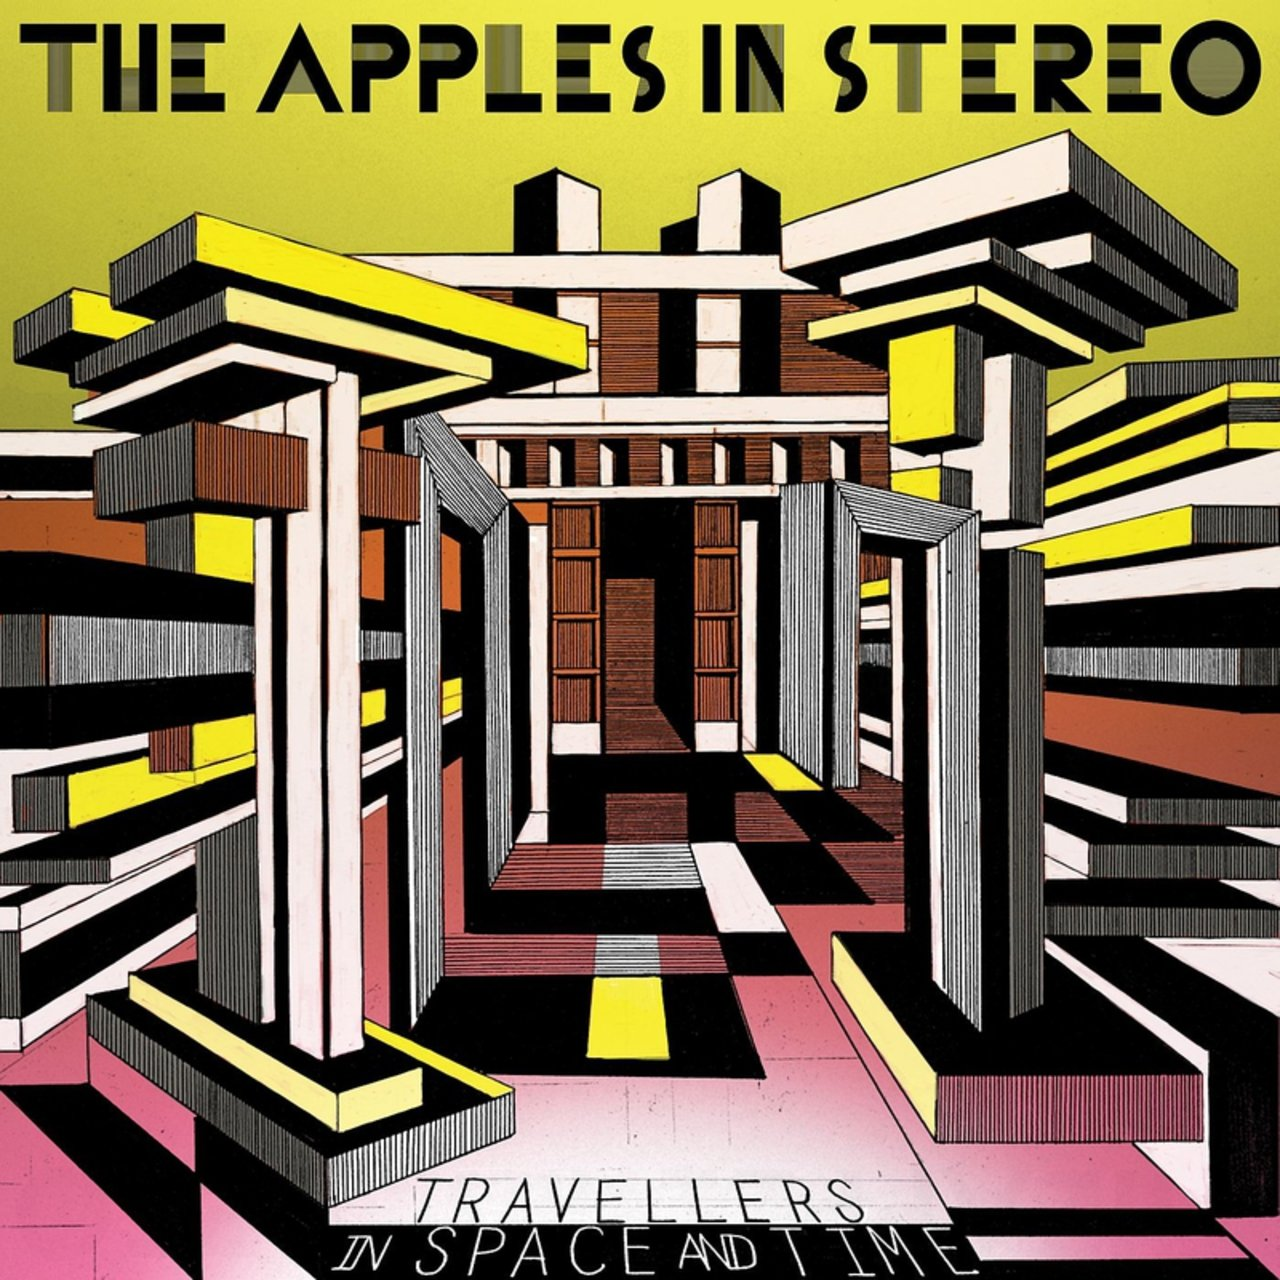 The Apples In Stereo - Travellers In Space And Time[2xLP]